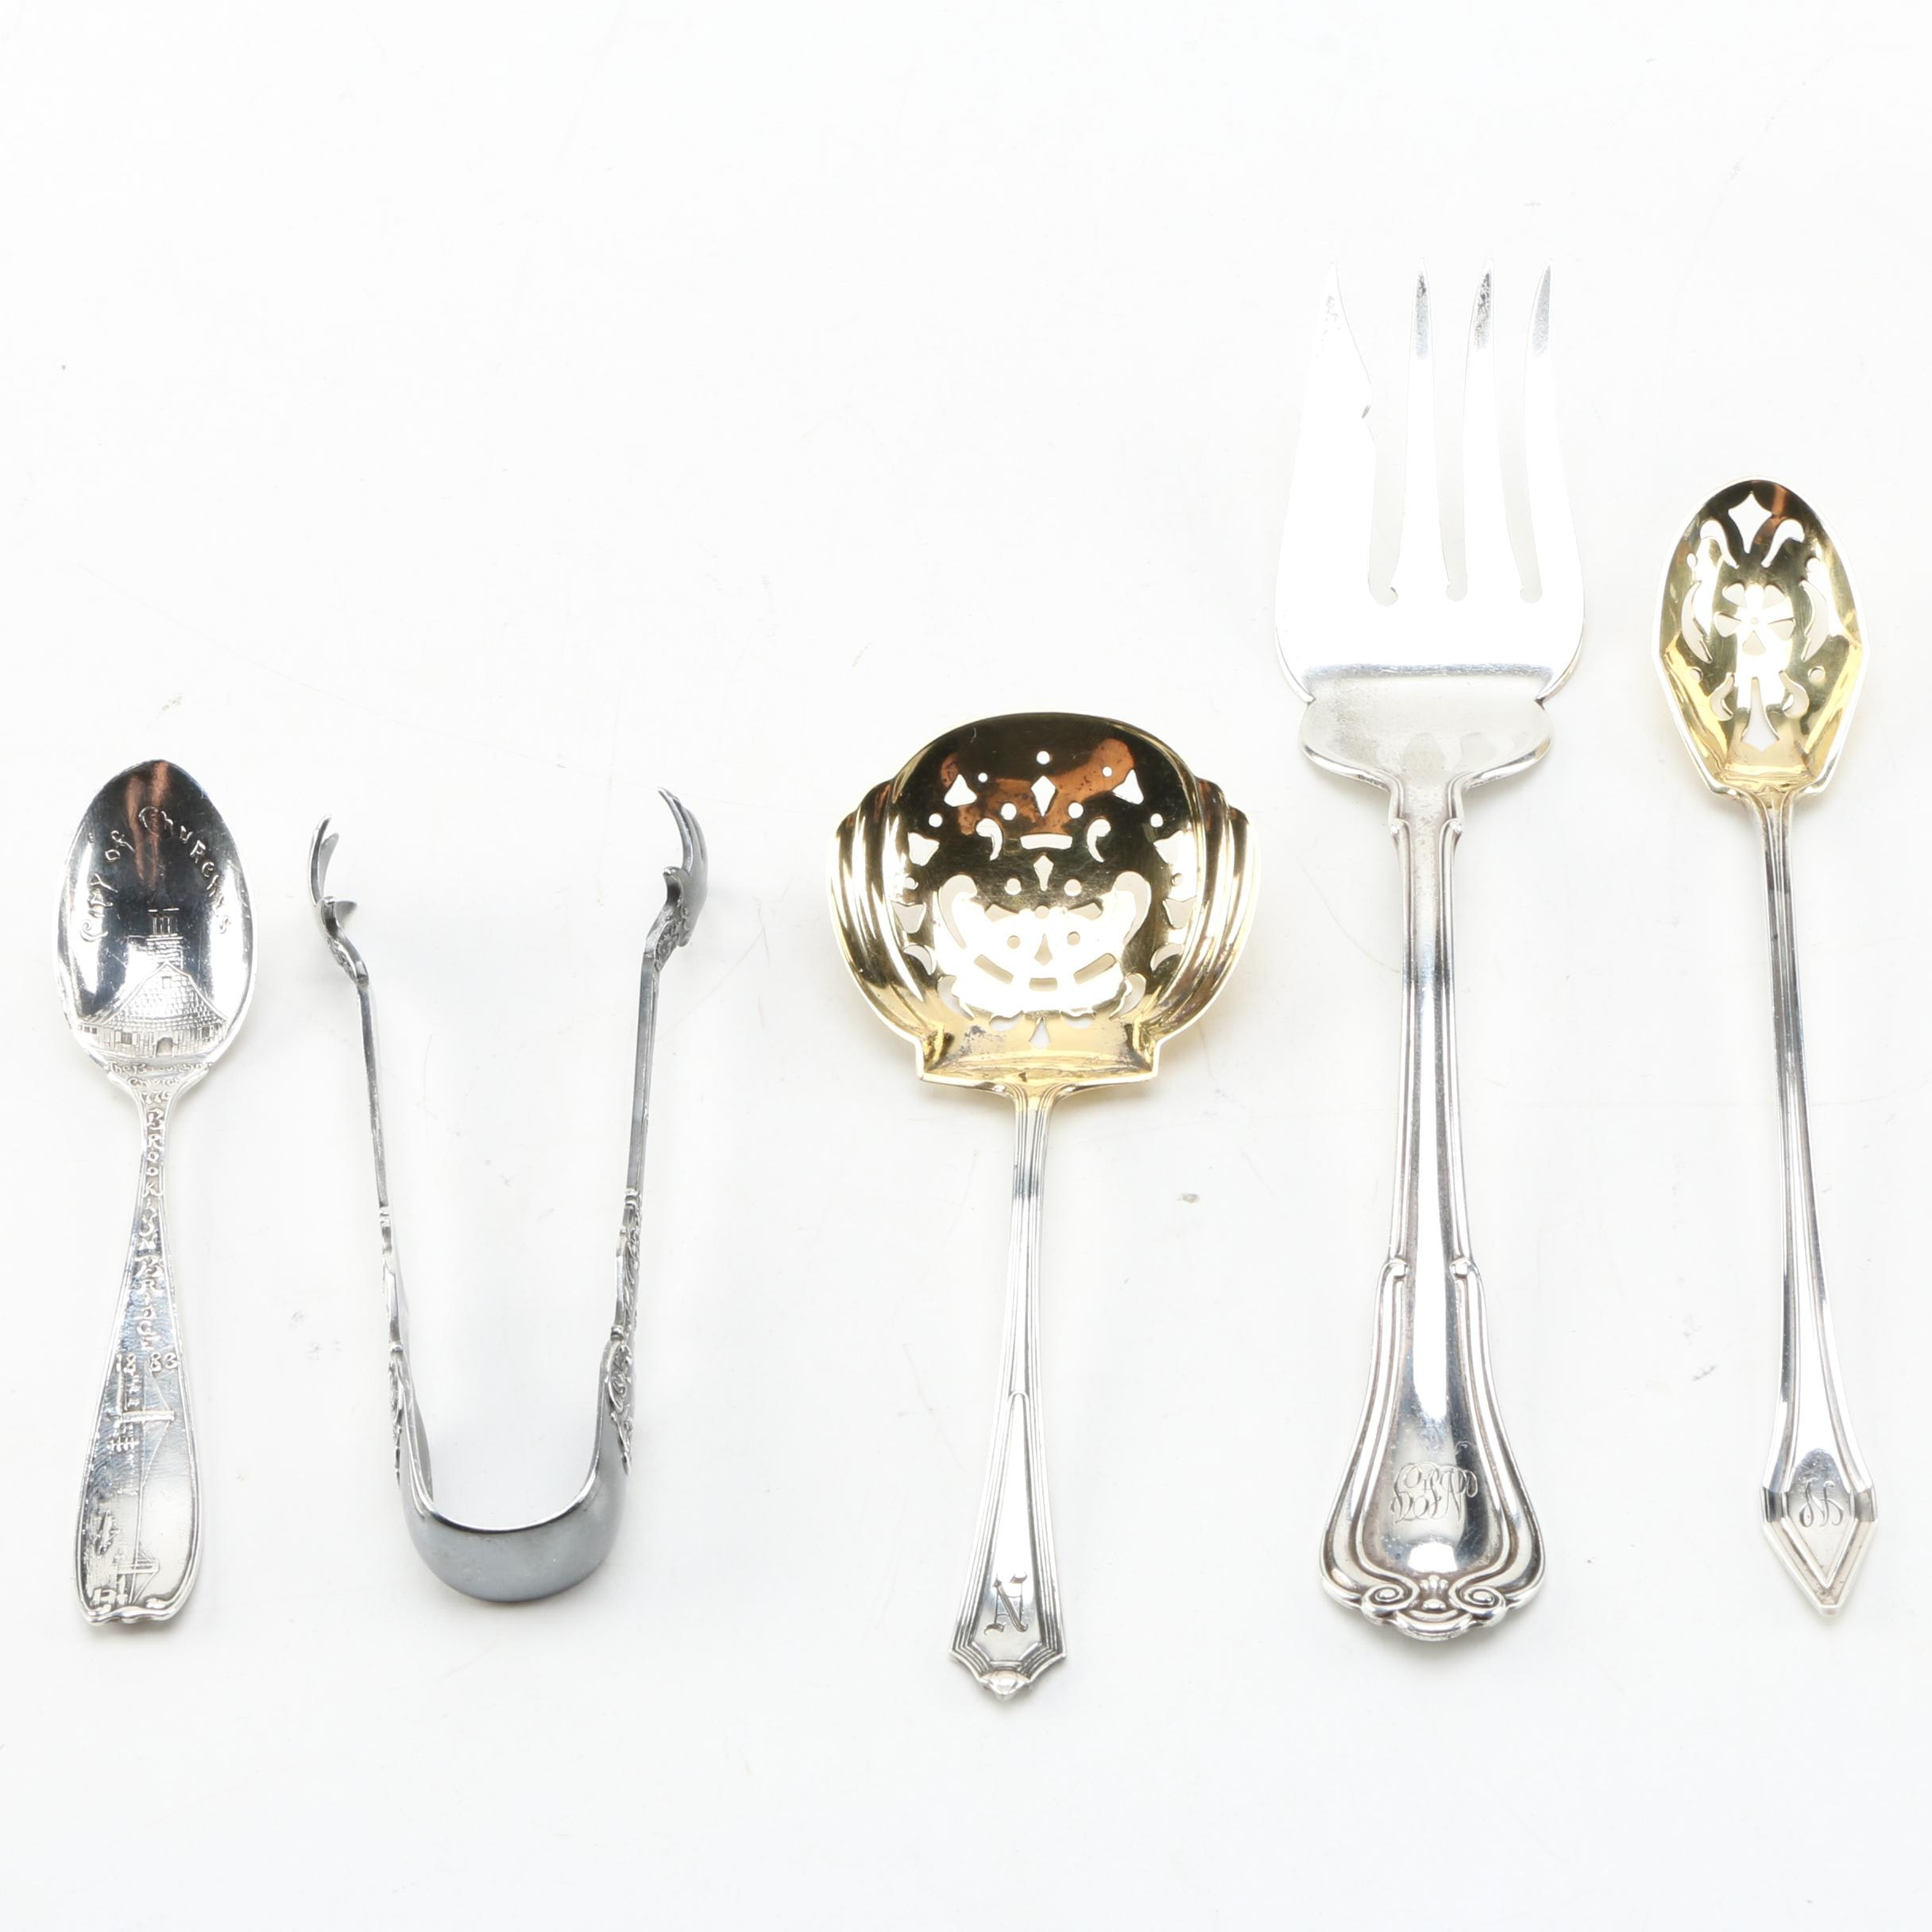 "Gorham Sterling Silver Utensils with ""Clermont"" Pattern"